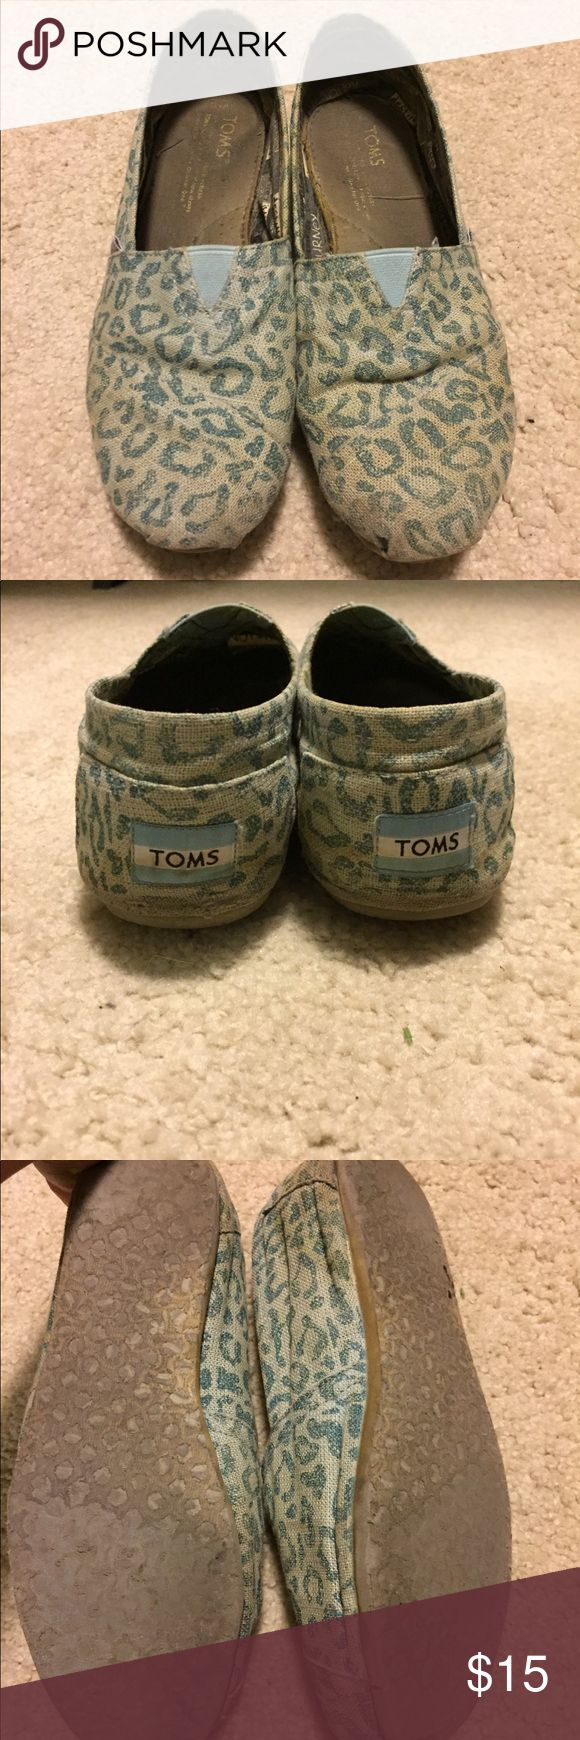 Leopard Toms These have been loved, but you can get more life out of them. No holes or weird smells. Smoke free pet free home. Bottoms are worn as shown, still comfortable though. Blue leopard print. Toms Shoes Flats & Loafers